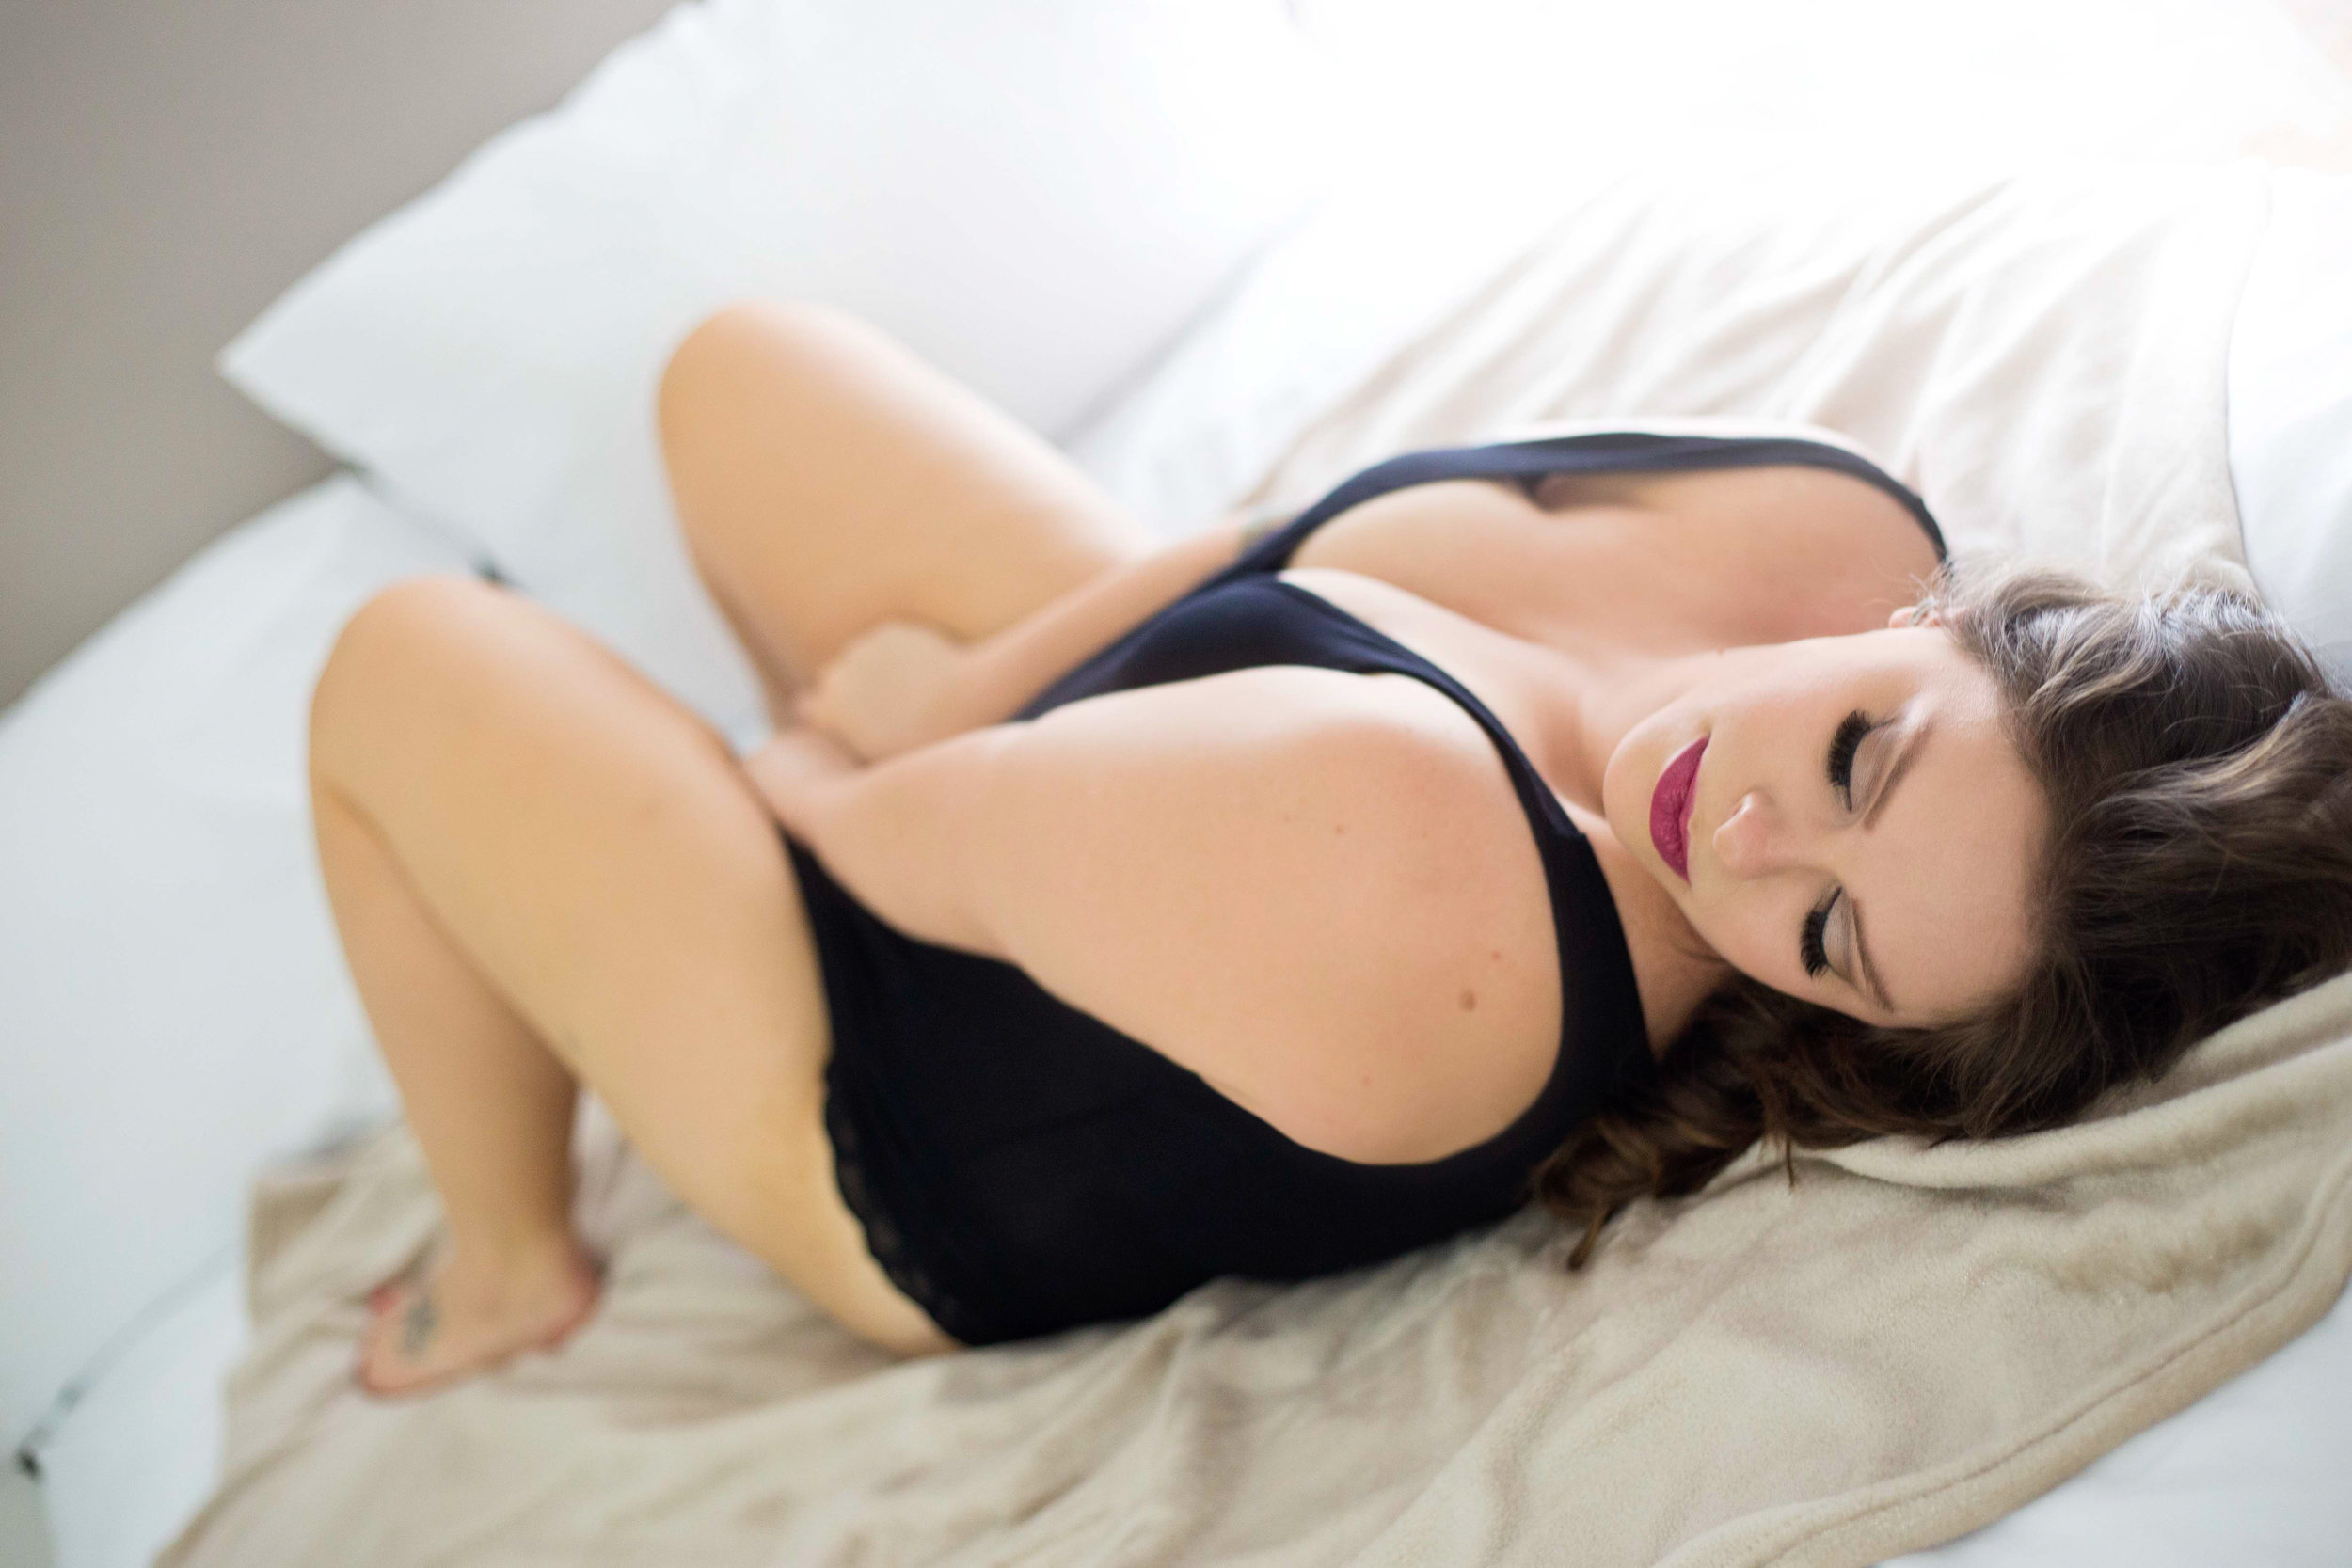 columbus boudoir sessions, sexual photo session, grooms gift ideas, sexy pictures